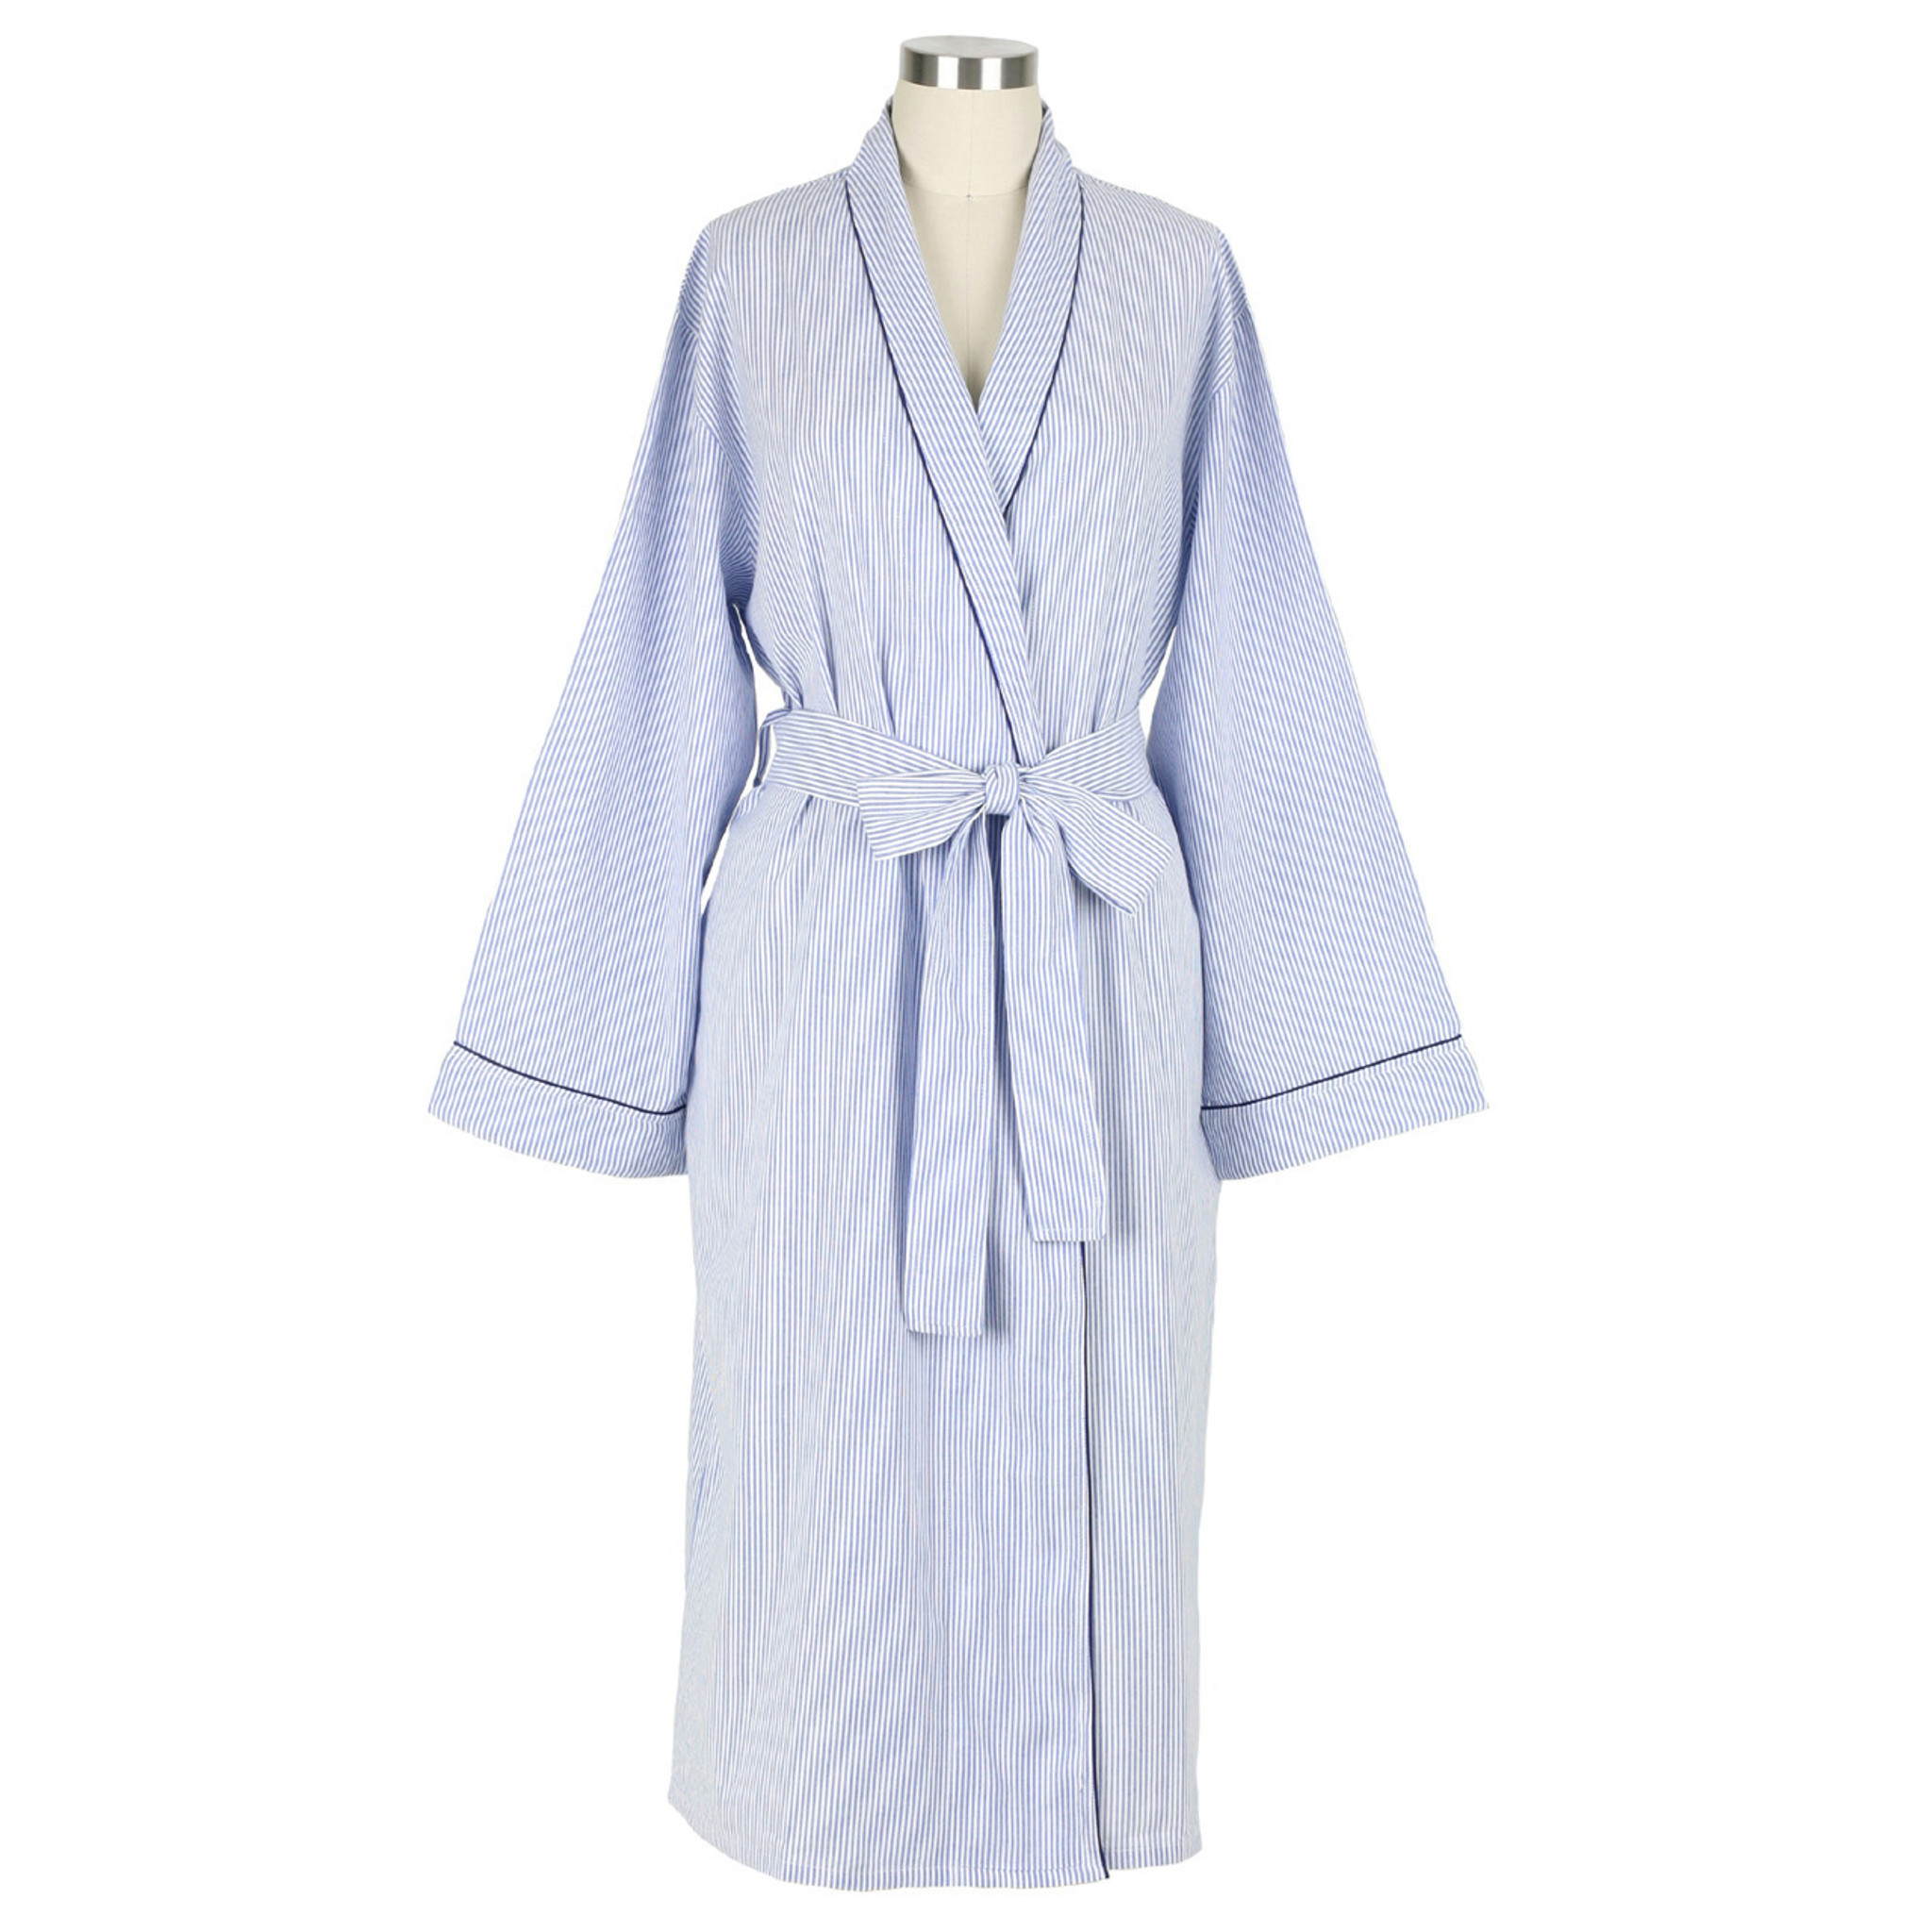 on sale online select for original popular design Blue Seersucker-Navy Robe